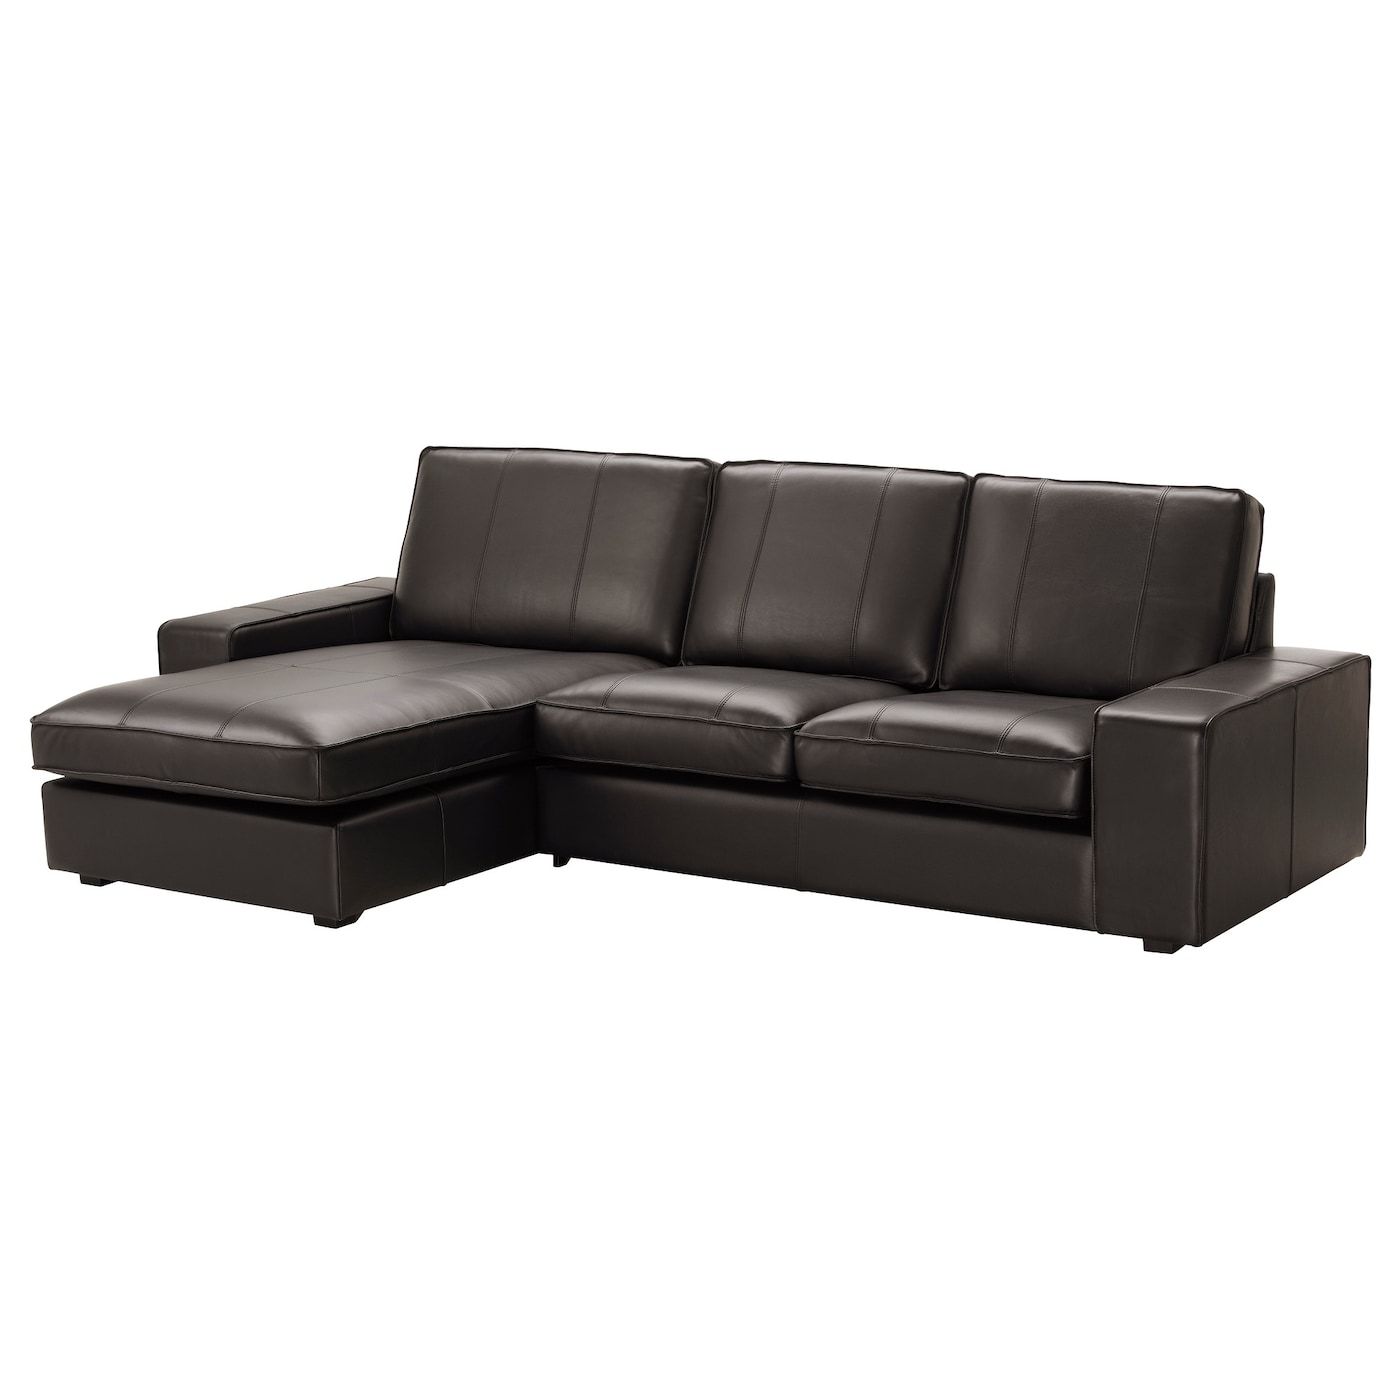 Leather coated fabric sofas ikea for U sofa med chaiselong